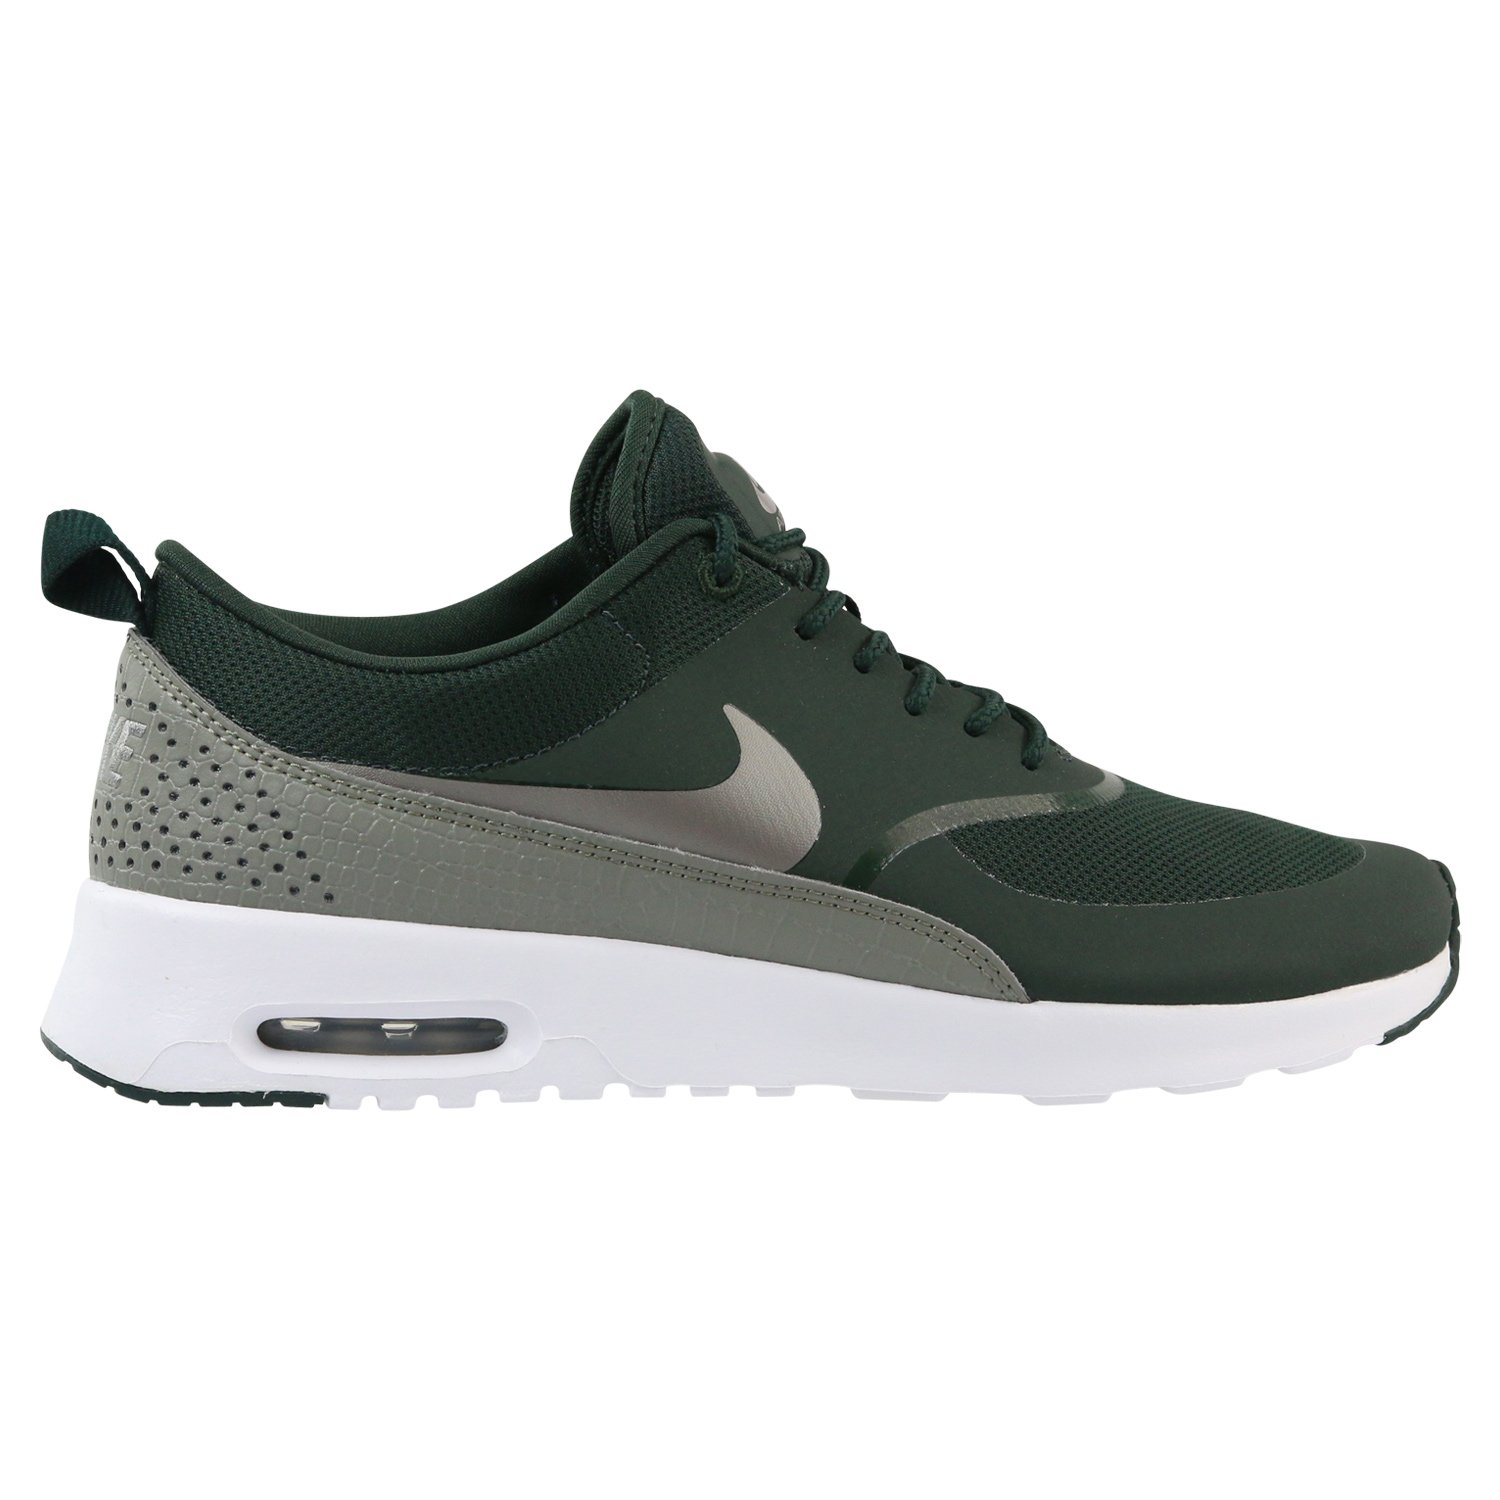 Nike Air Max Thea Outdoor Green Metallic Pewter Style: 599409 308 Size: 10